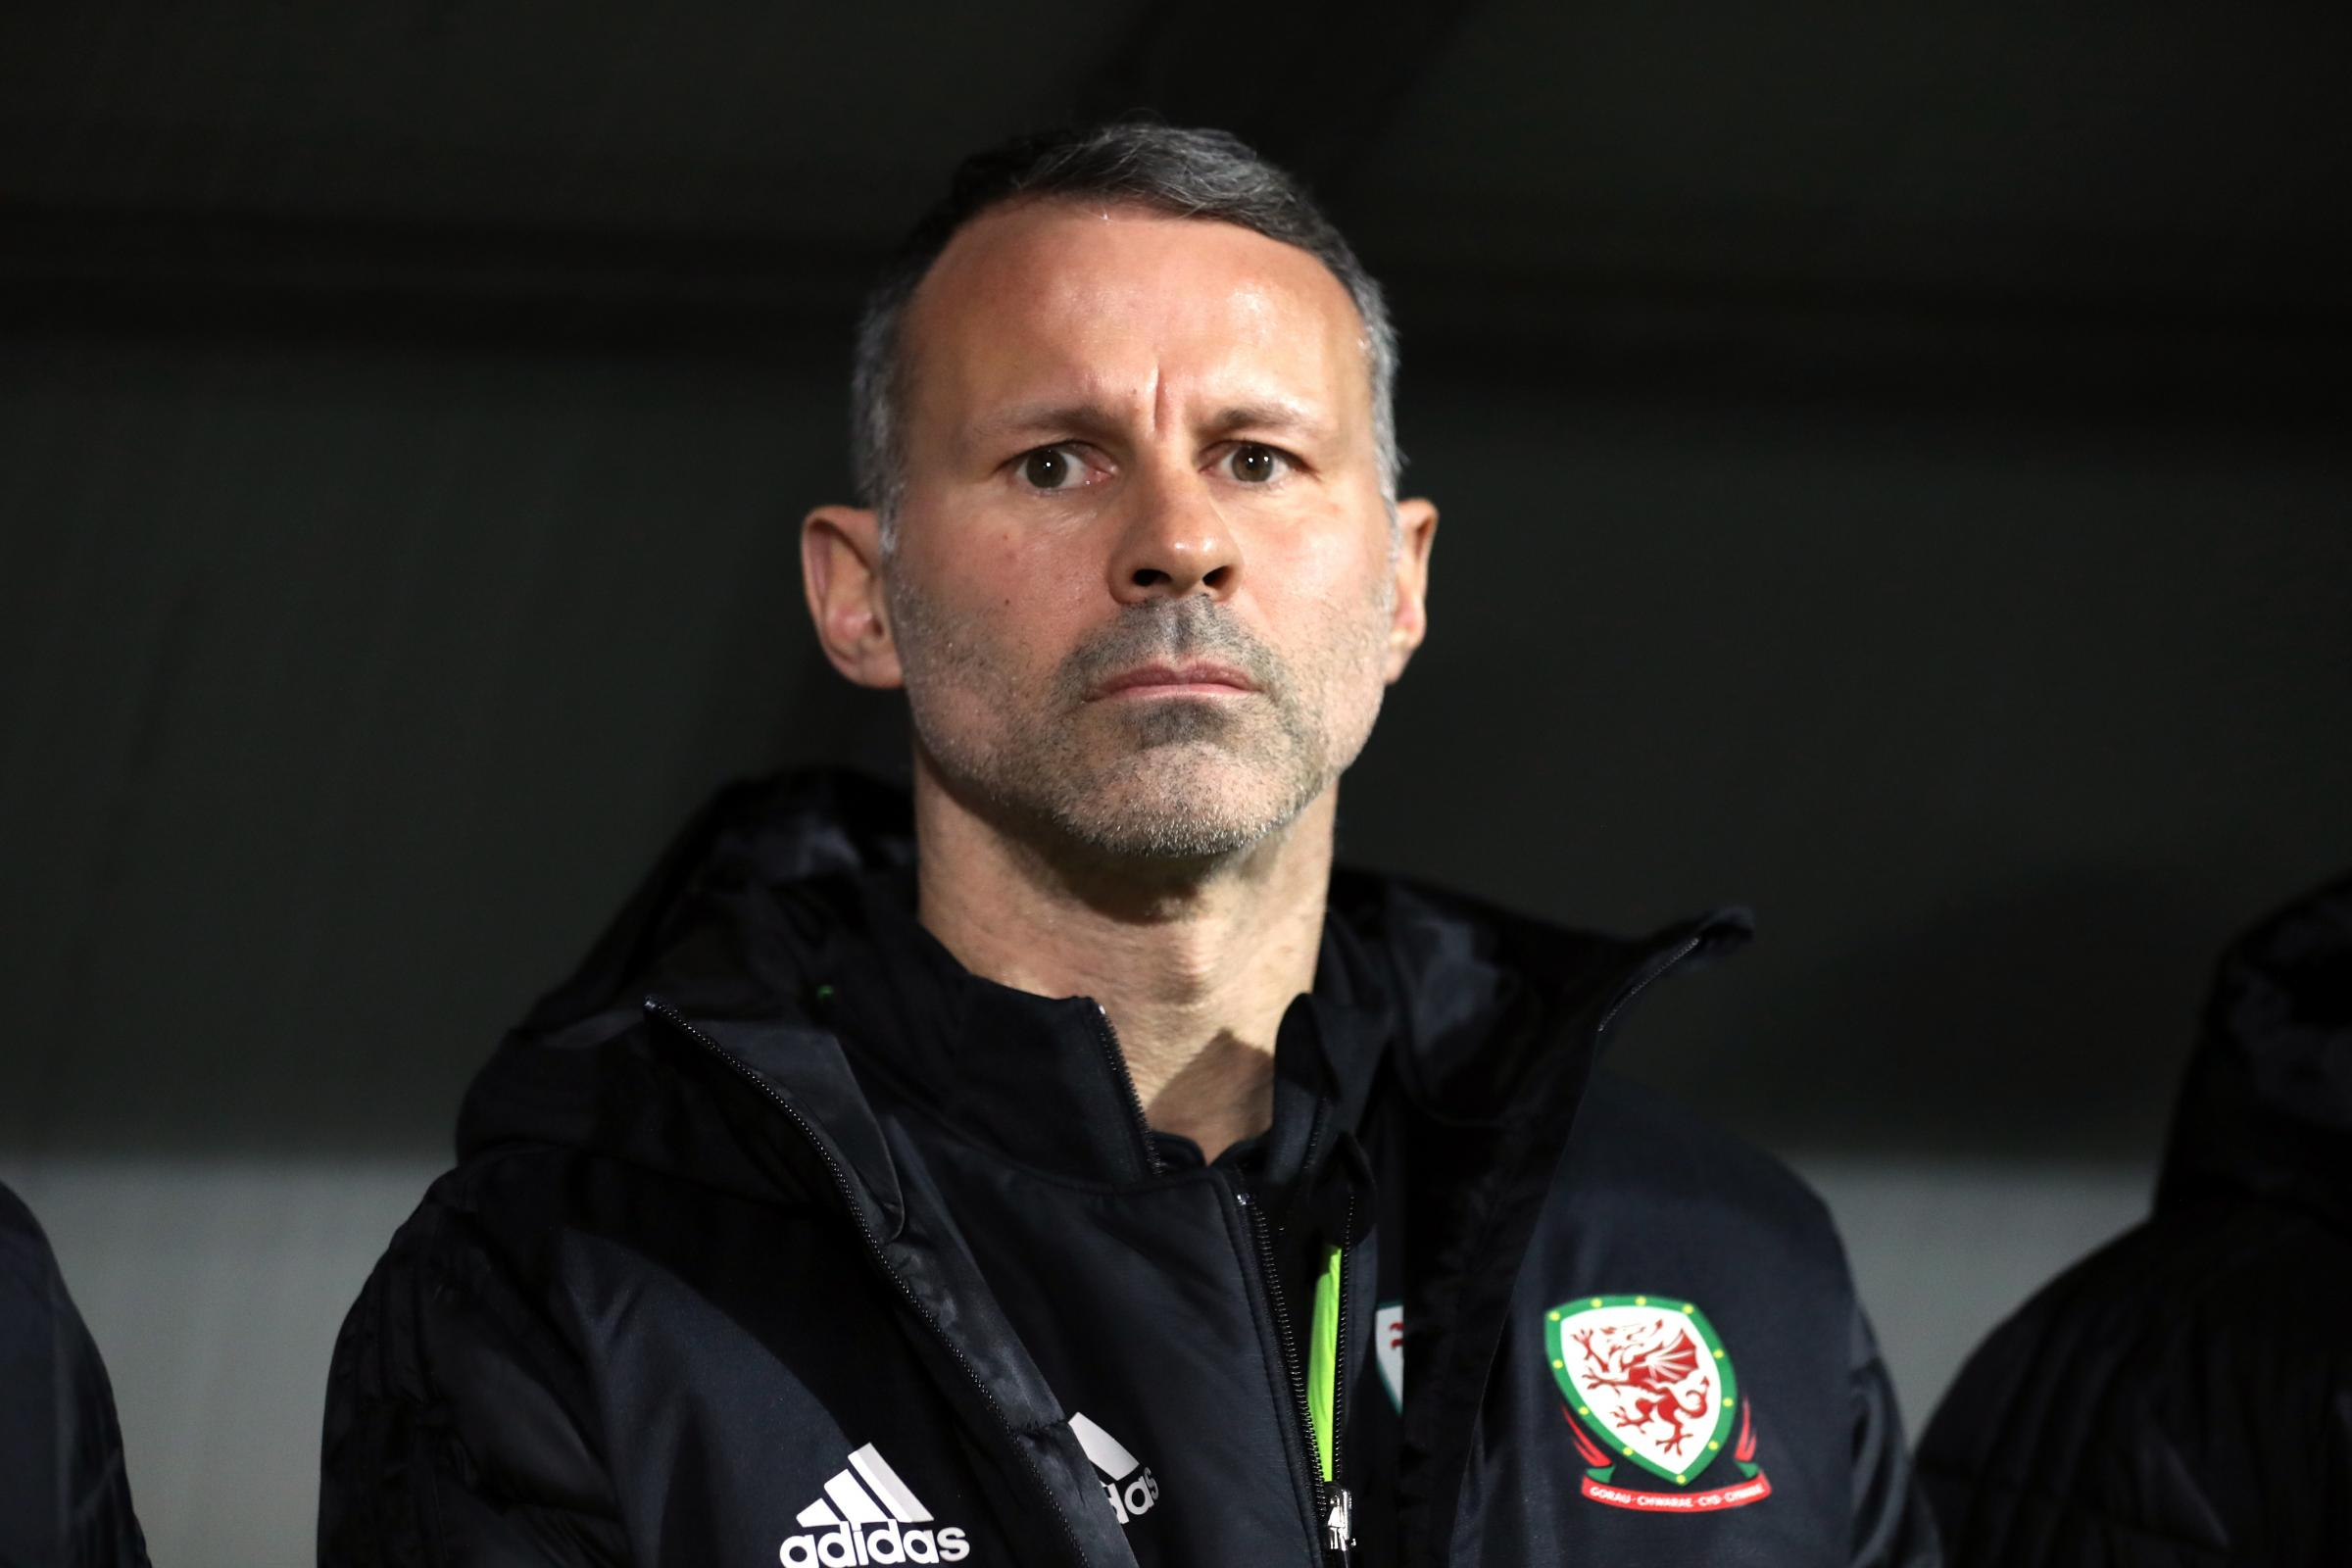 Ryan Giggs wants to recreate 2016 atmosphere and reach Euro 2020 - Dudley News